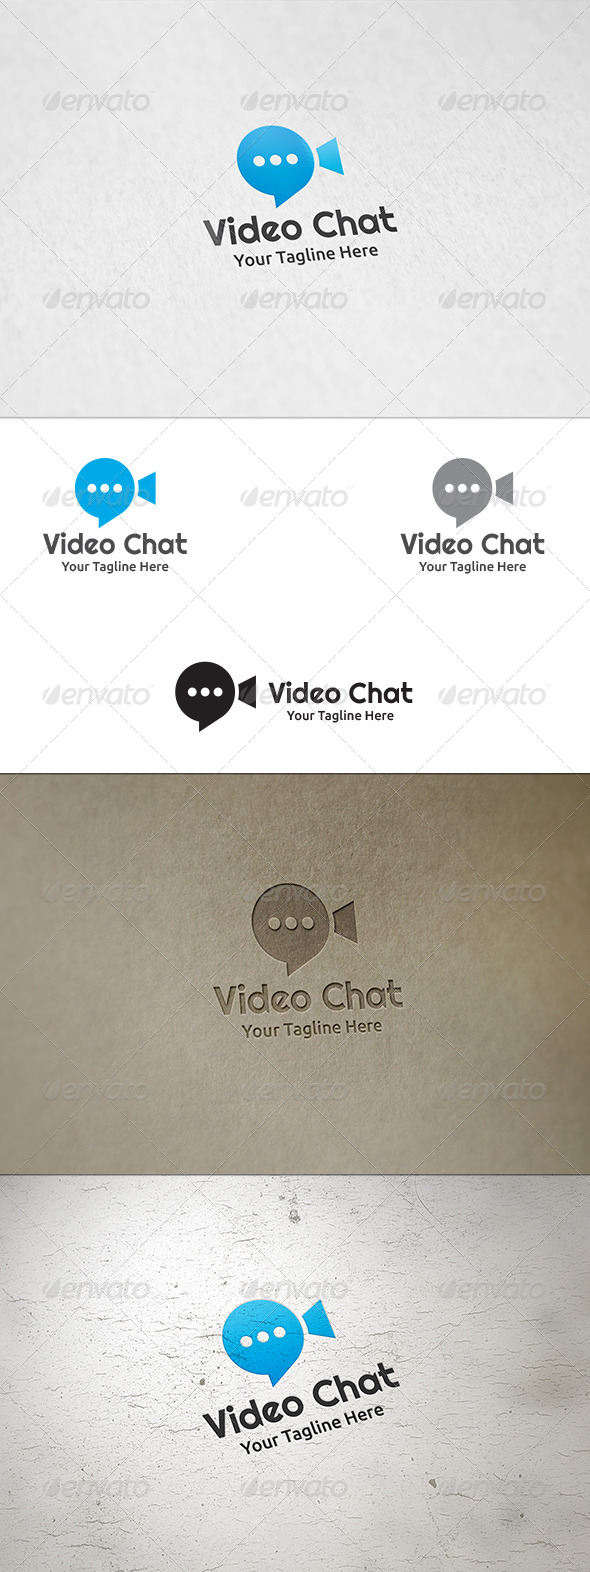 GraphicRiver Video Chat Logo Template 8732025